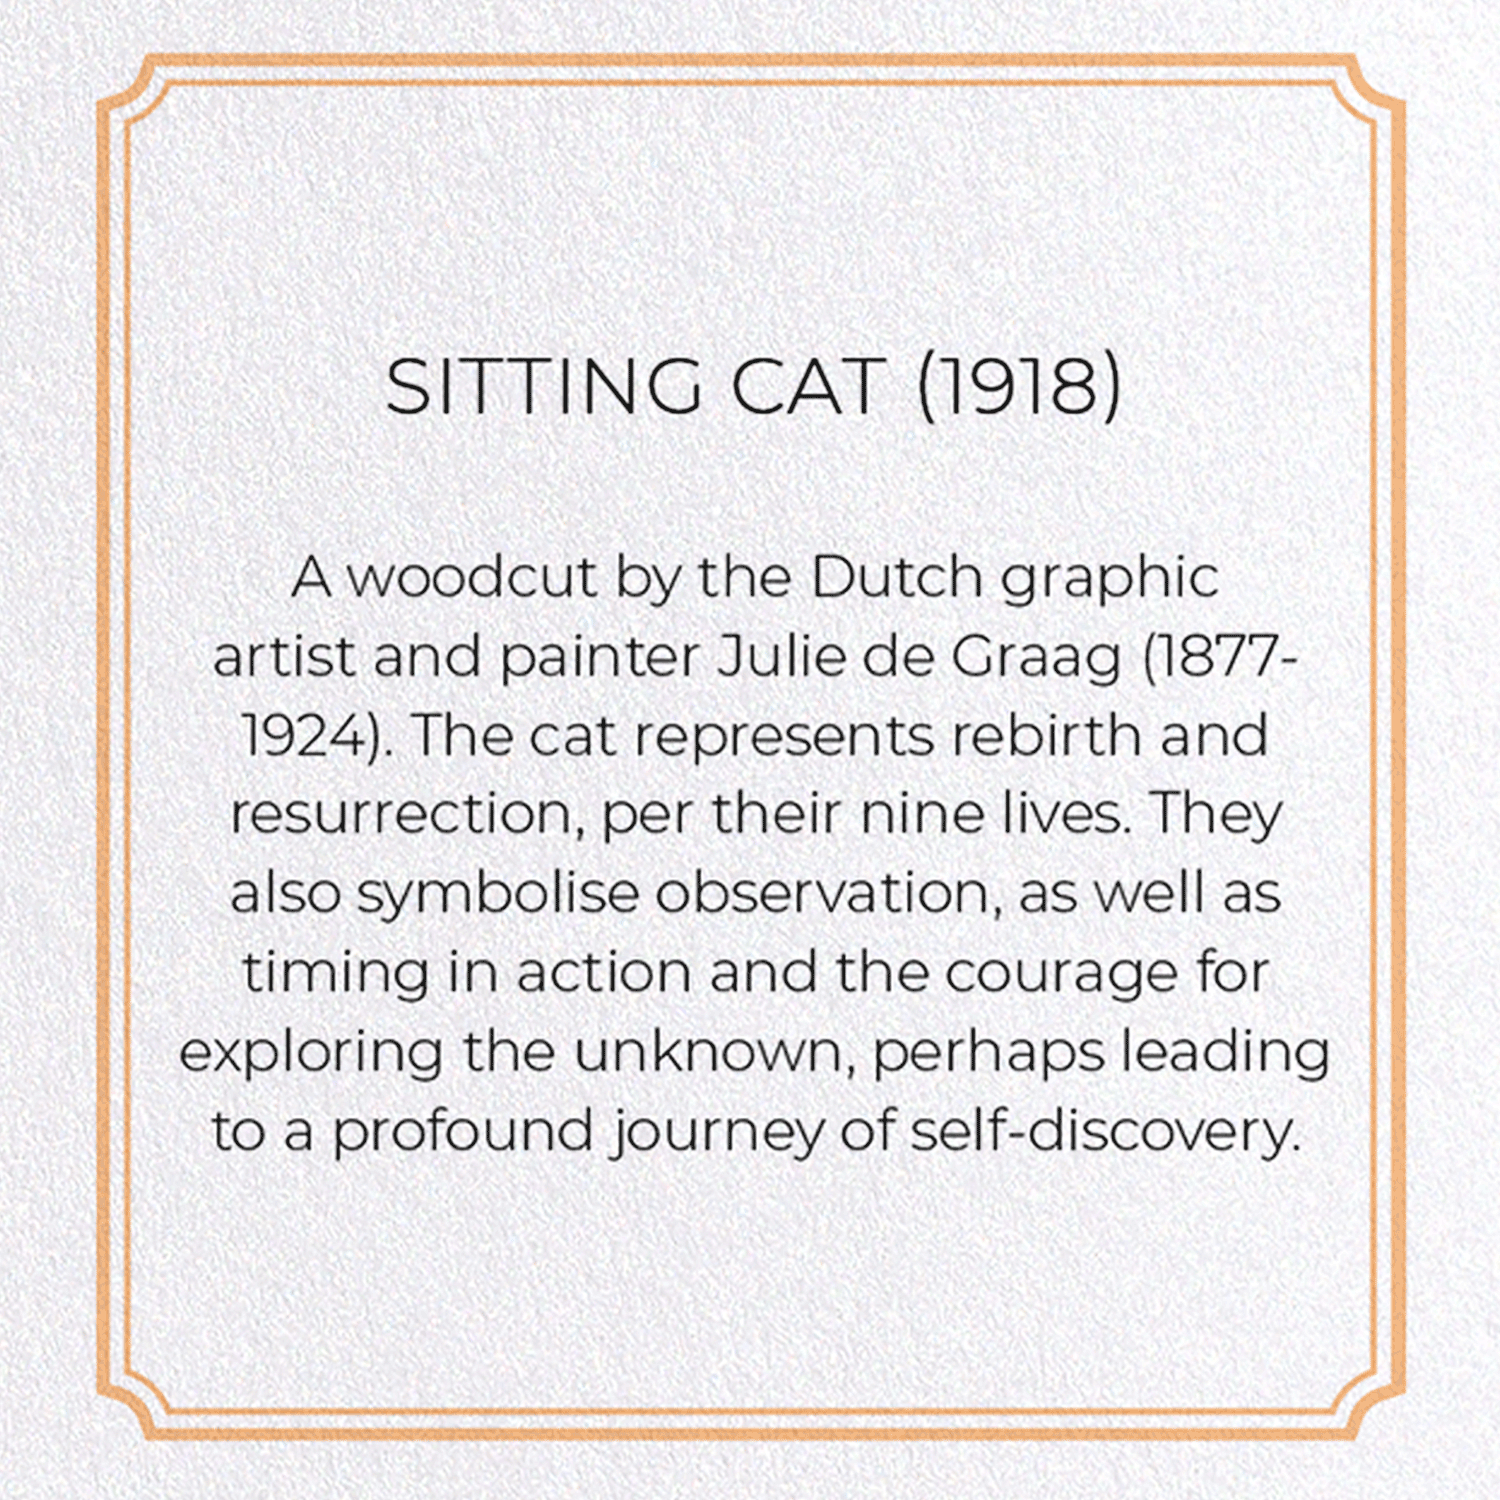 SITTING CAT (1918): 8xCards